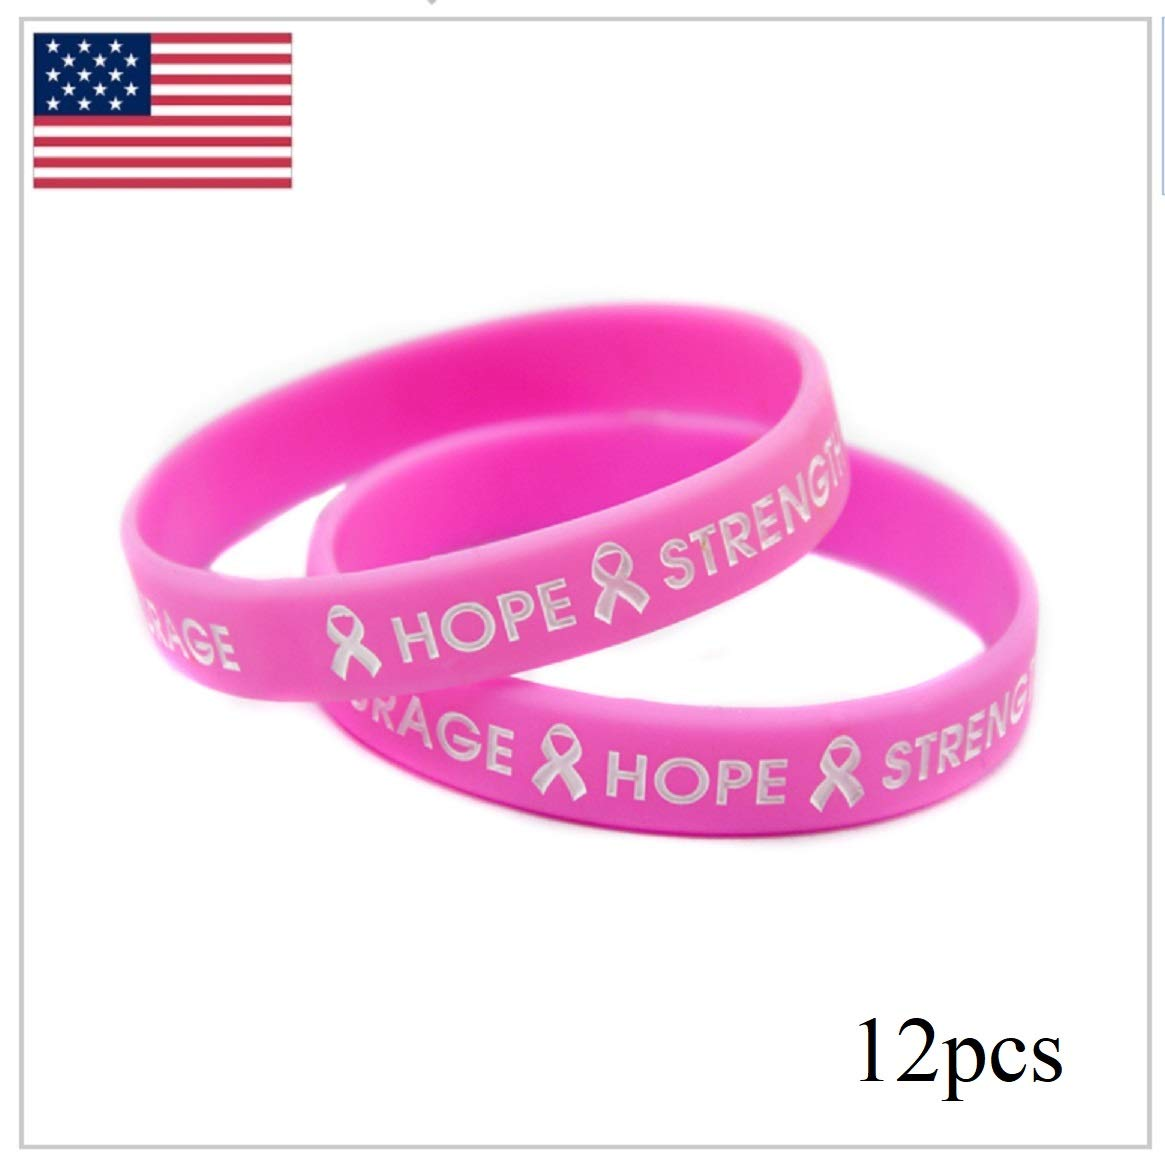 2 6 12 24 pcs Breast Cancer Awareness Pink Silicone Bracelets 'Hope Strength Courage' by PCA Etc